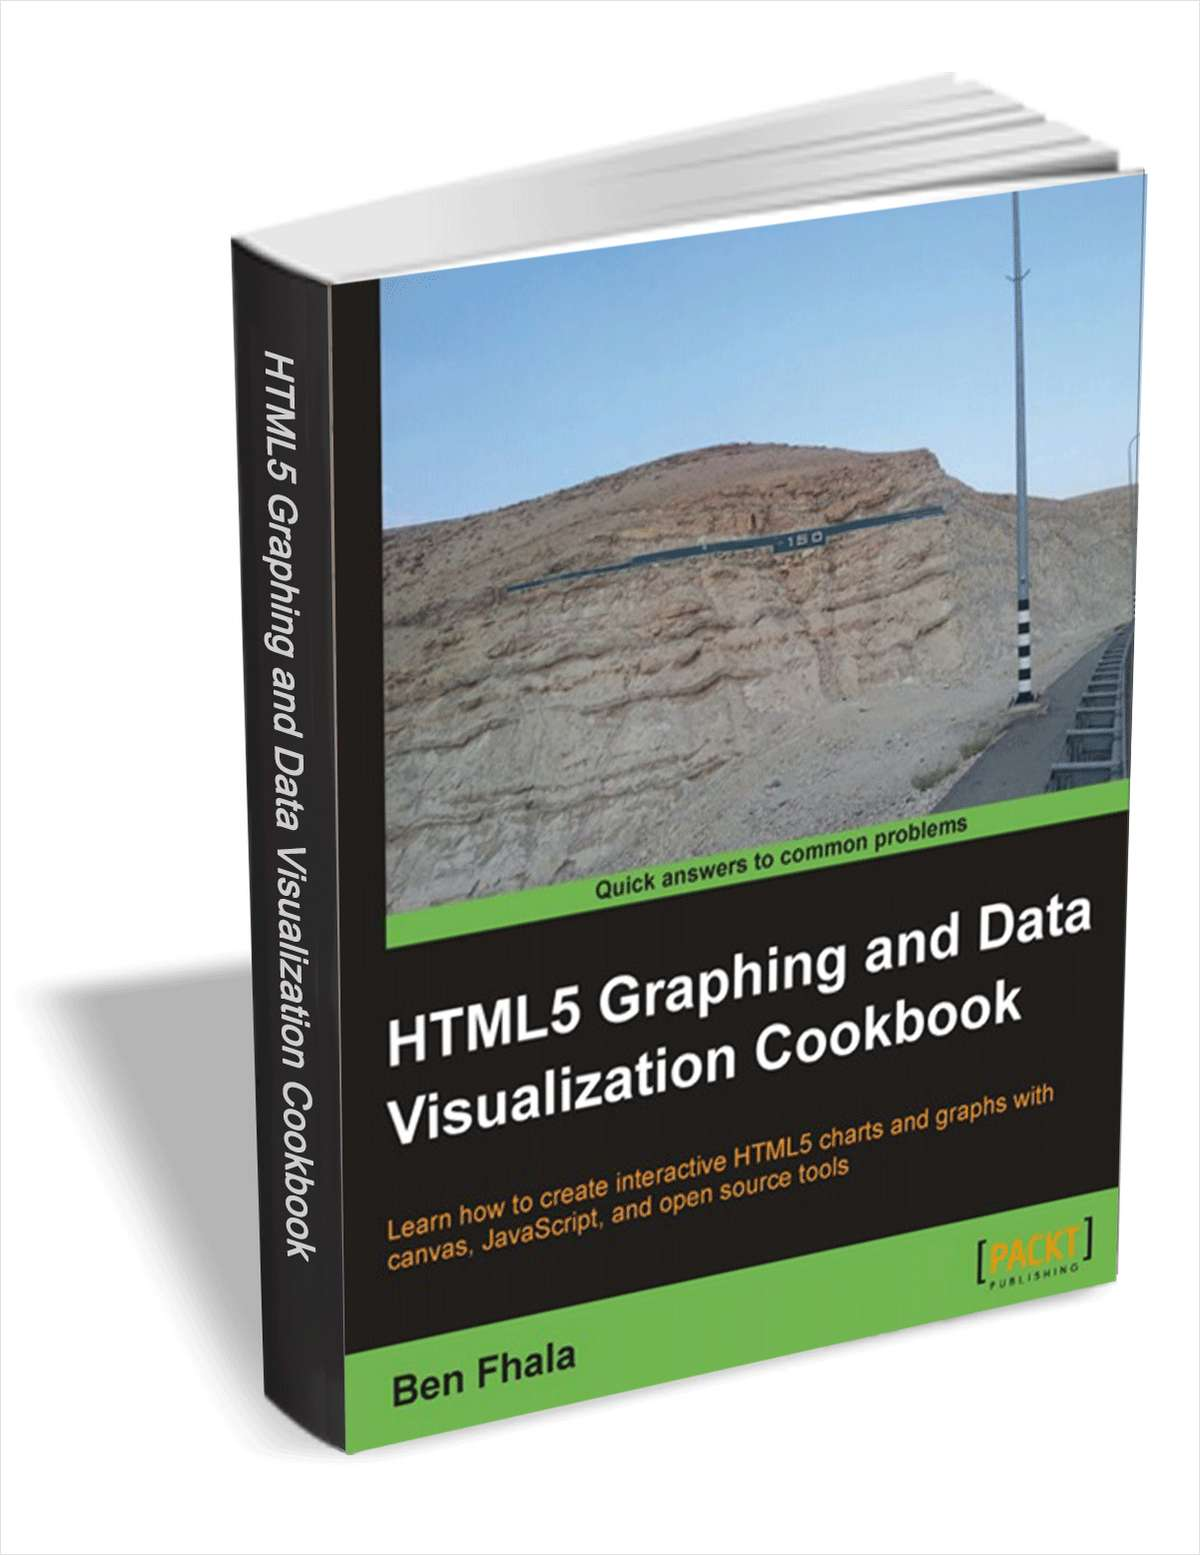 HTML5 Graphing and Data Visualization Cookbook ($15 Value) FREE For a Limited Time